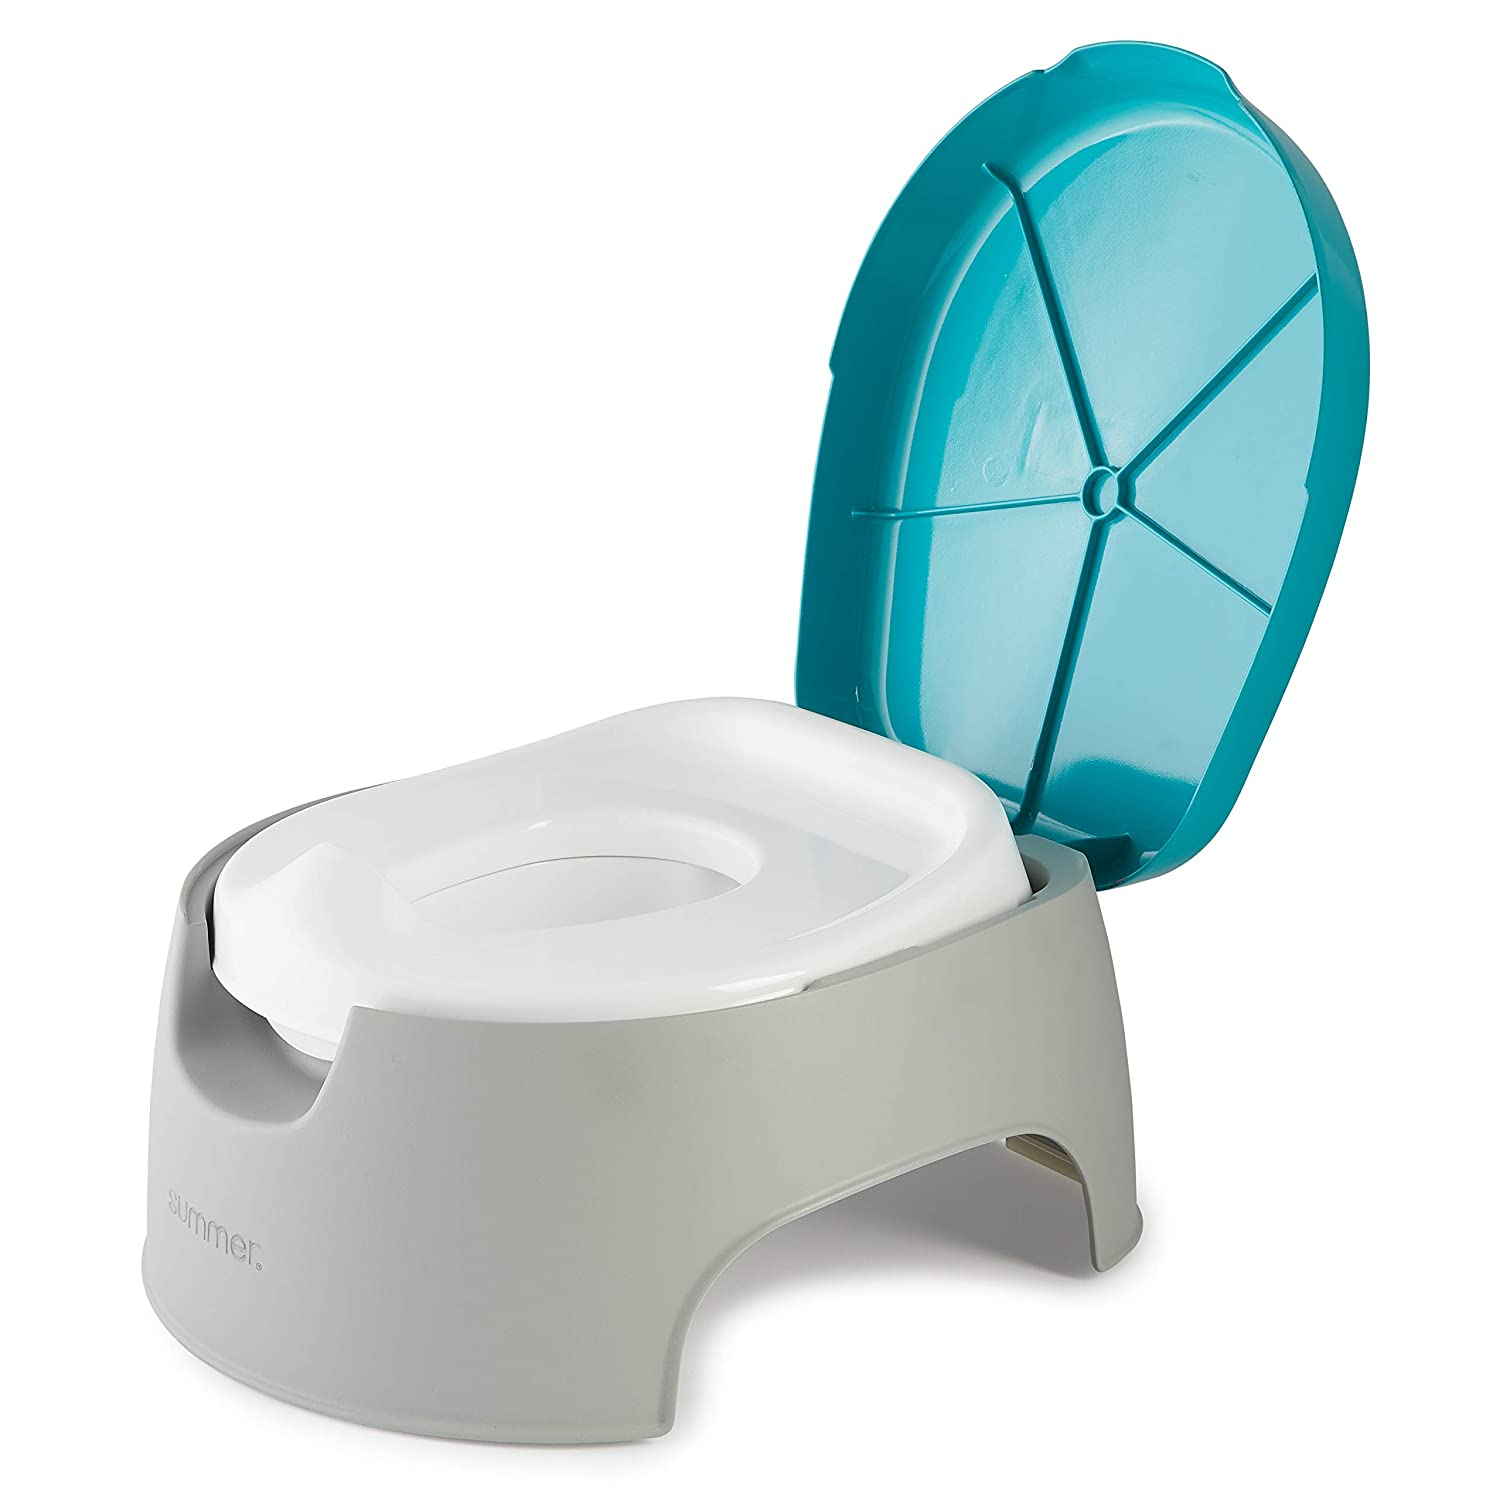 Amazon.com : Summer 3-in-1 Train with Me Potty – Potty Seat, Potty Topper and Stepstool for Toddler Potty Training and Beyond – Easy to Empty and Clean, Space Saving 3-in-1 Solution : Baby